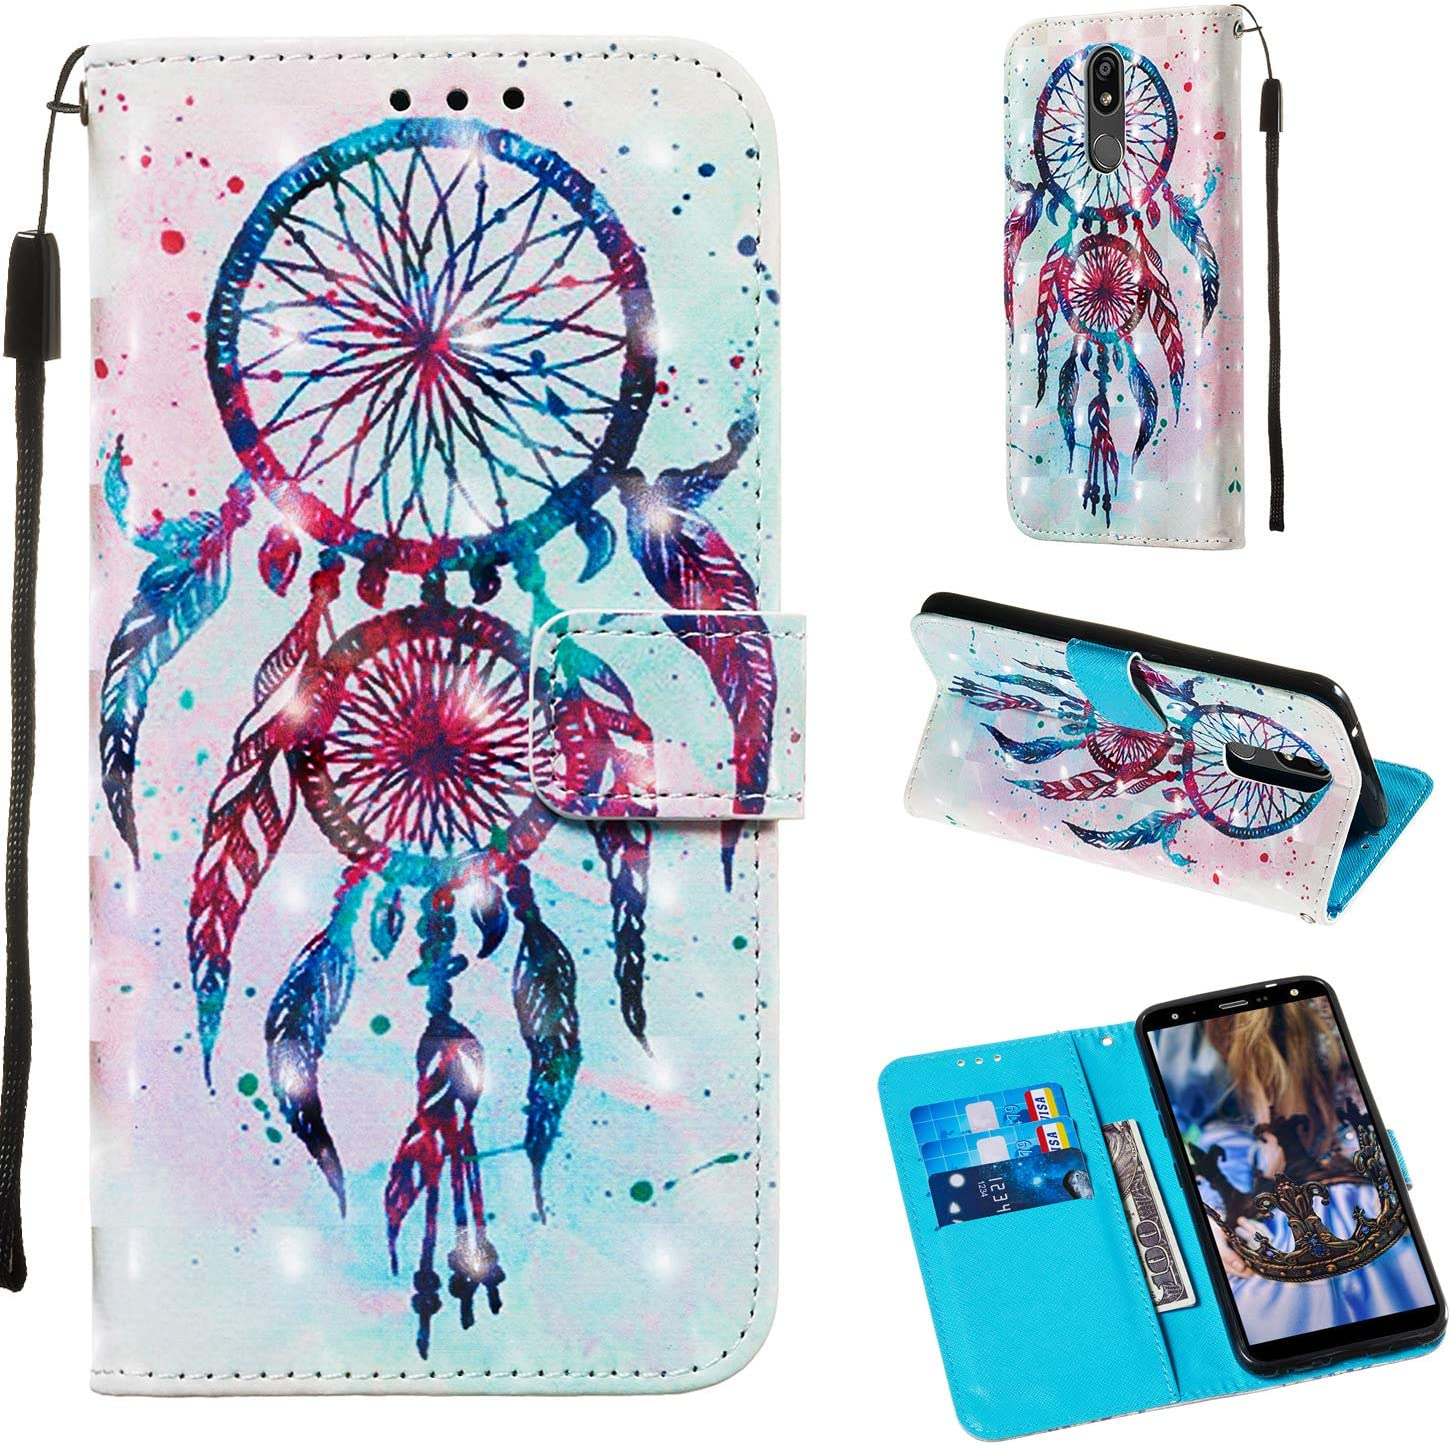 LG K40 Case,LG K12 Plus 2019 wallet case for Girls Women 3D Relief PU Leather Wallet Flip Cover with Credit Card Slot and Kickstand Magnetic Folio Case for LG K40 2019 / LG K12 Plus (Color wind bell)